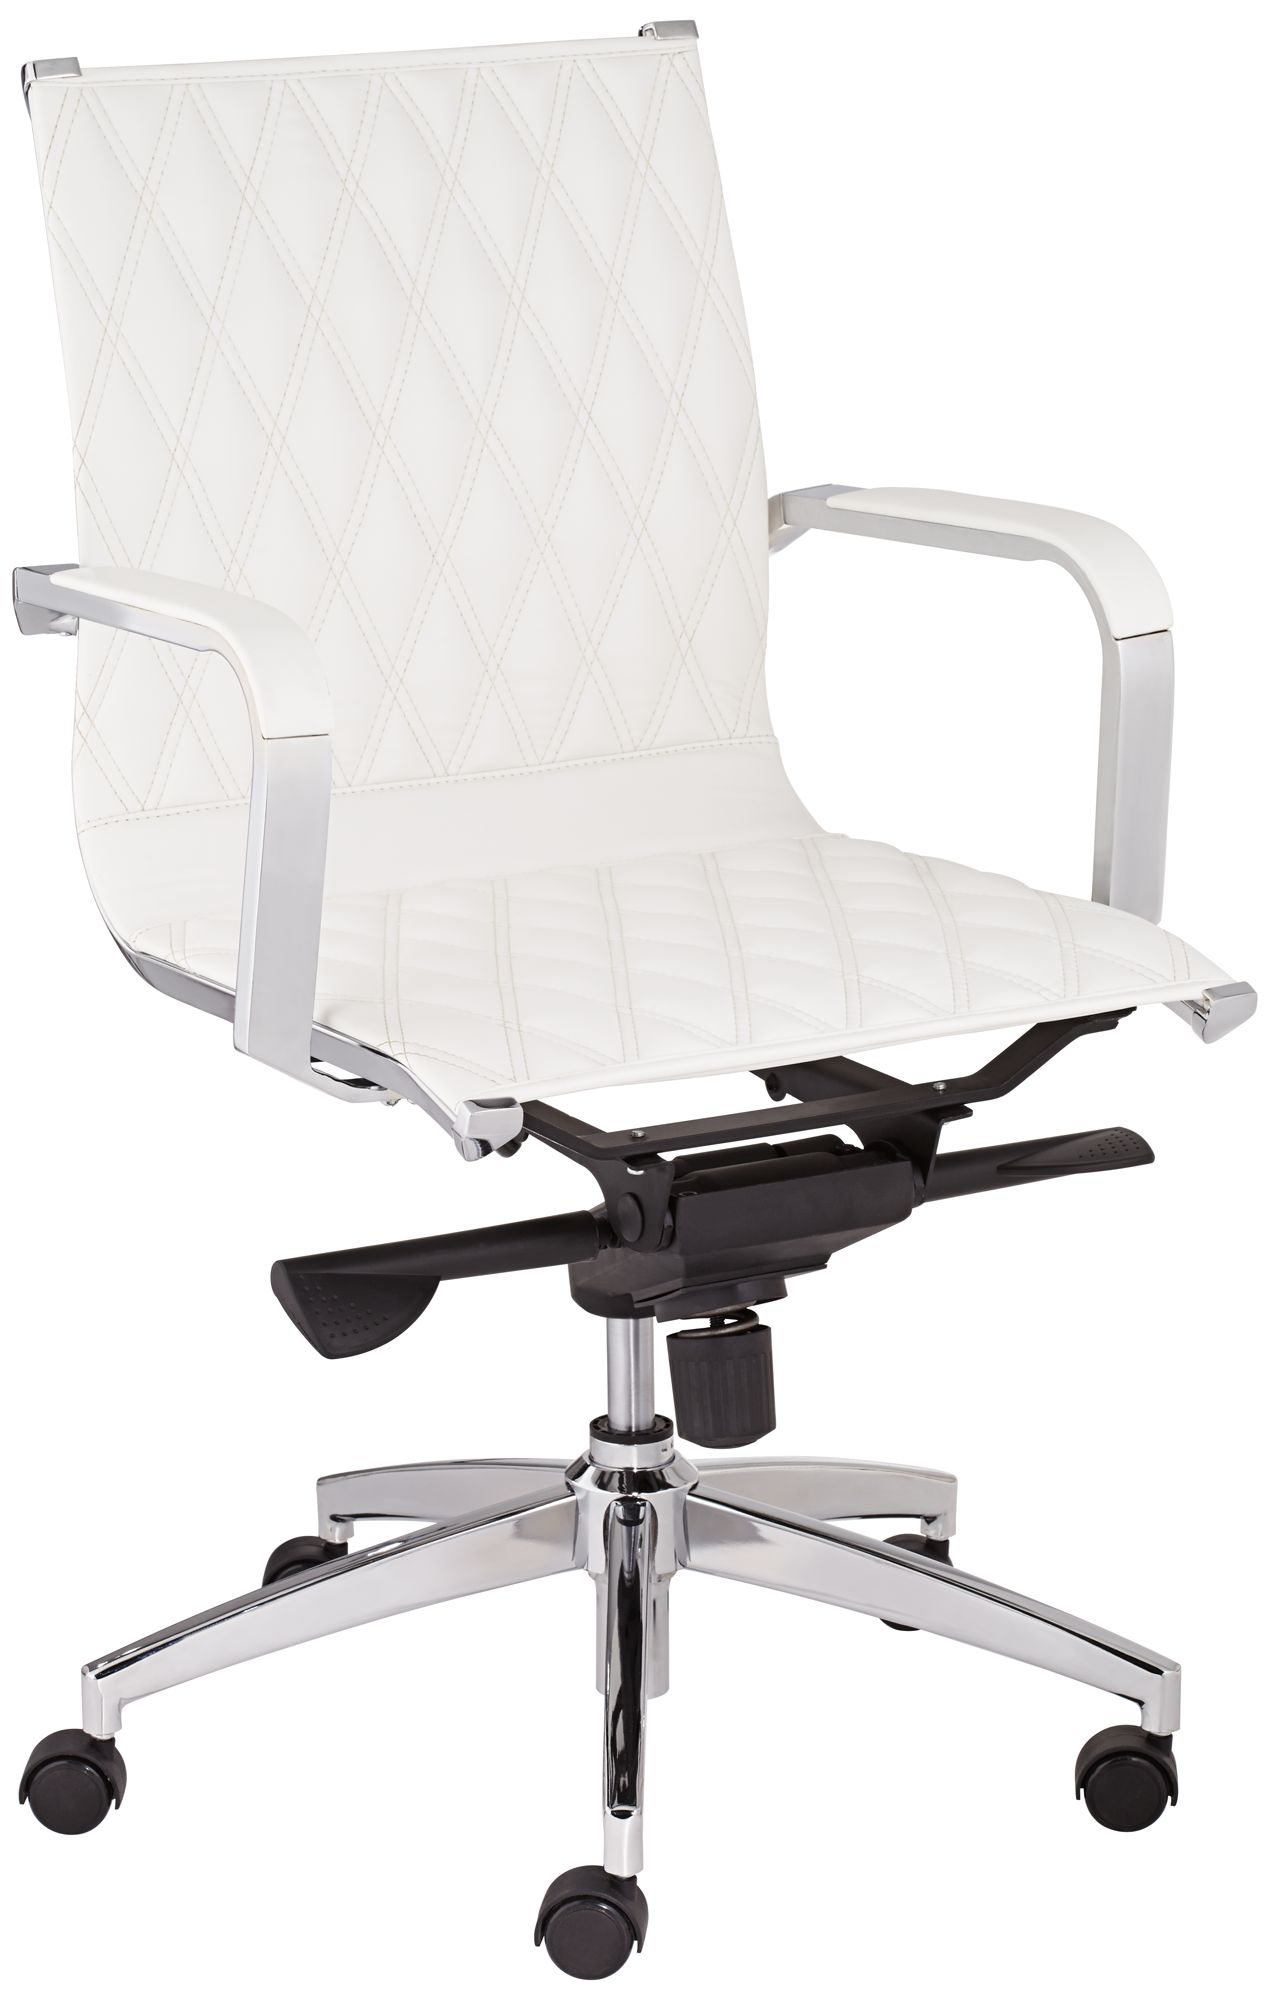 Chanelle White Faux Leather Mid Back Office Chair